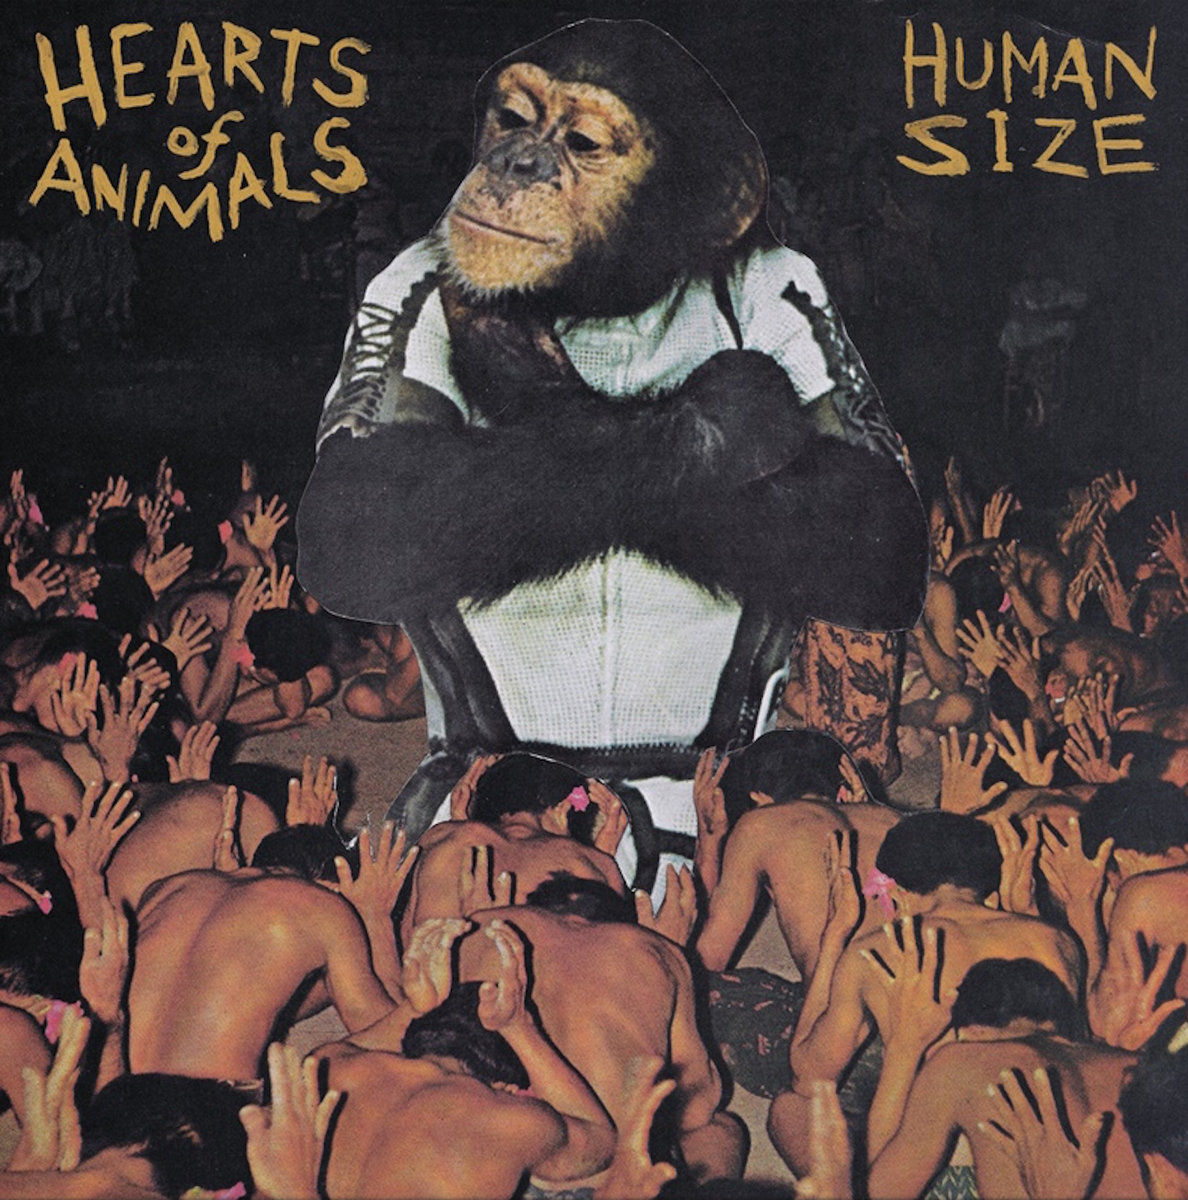 from Human Size by Hearts of Animals